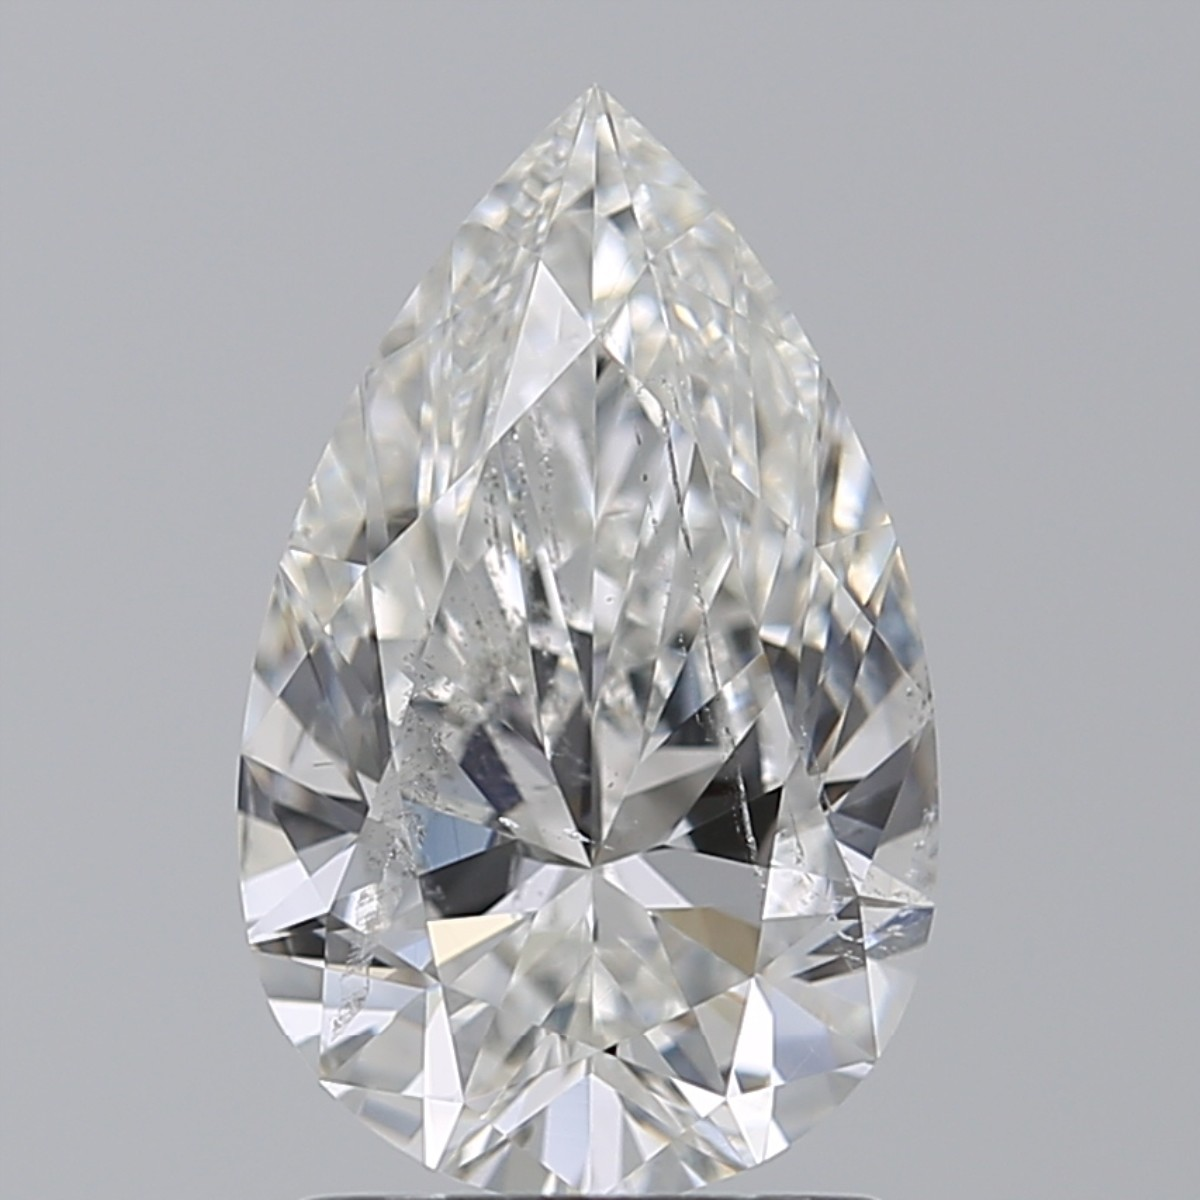 1.72 Carat Pear Diamond (G/SI2)